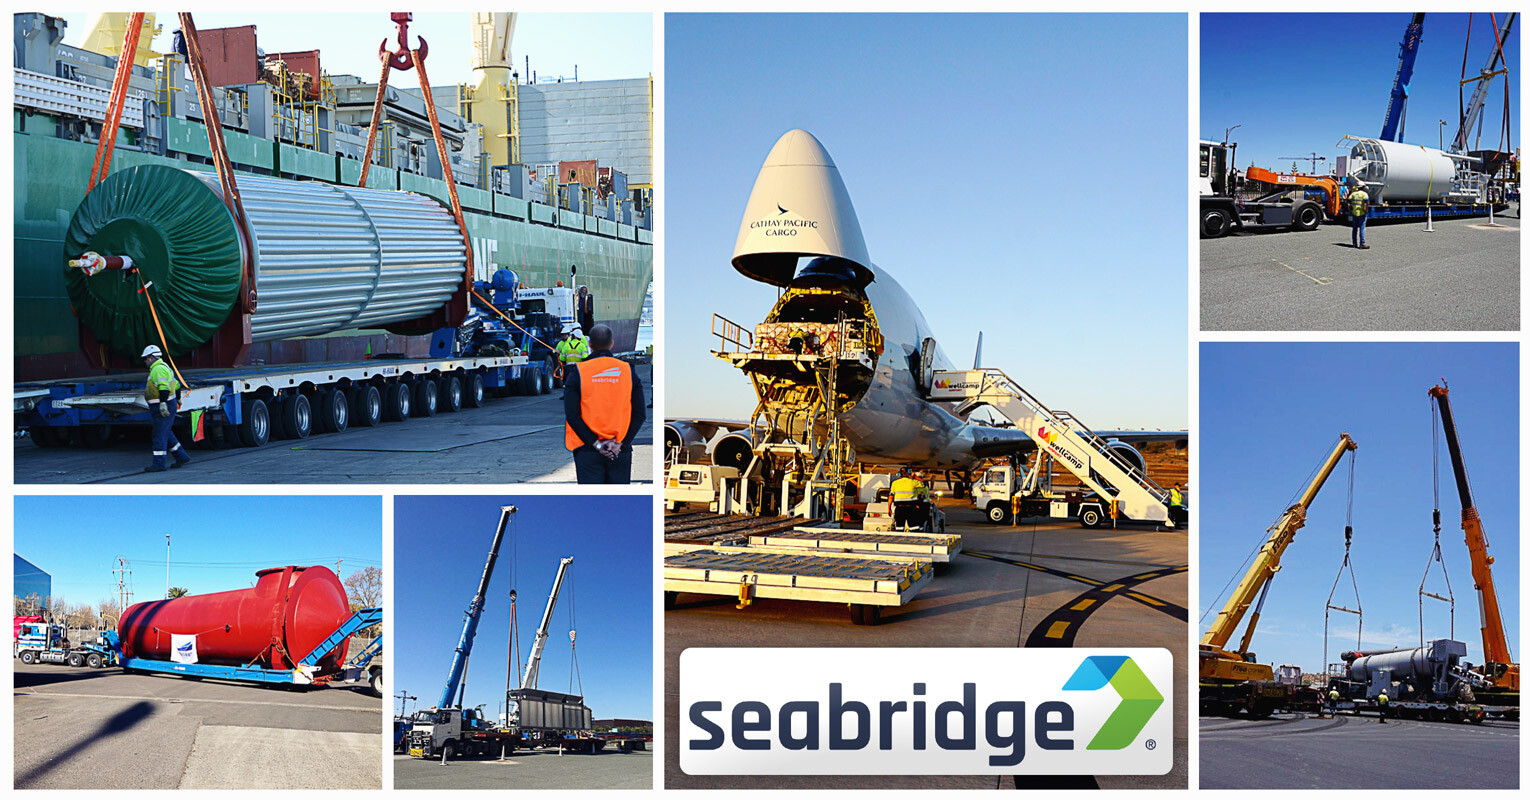 New member representing New Zealand – Seabridge Logistics